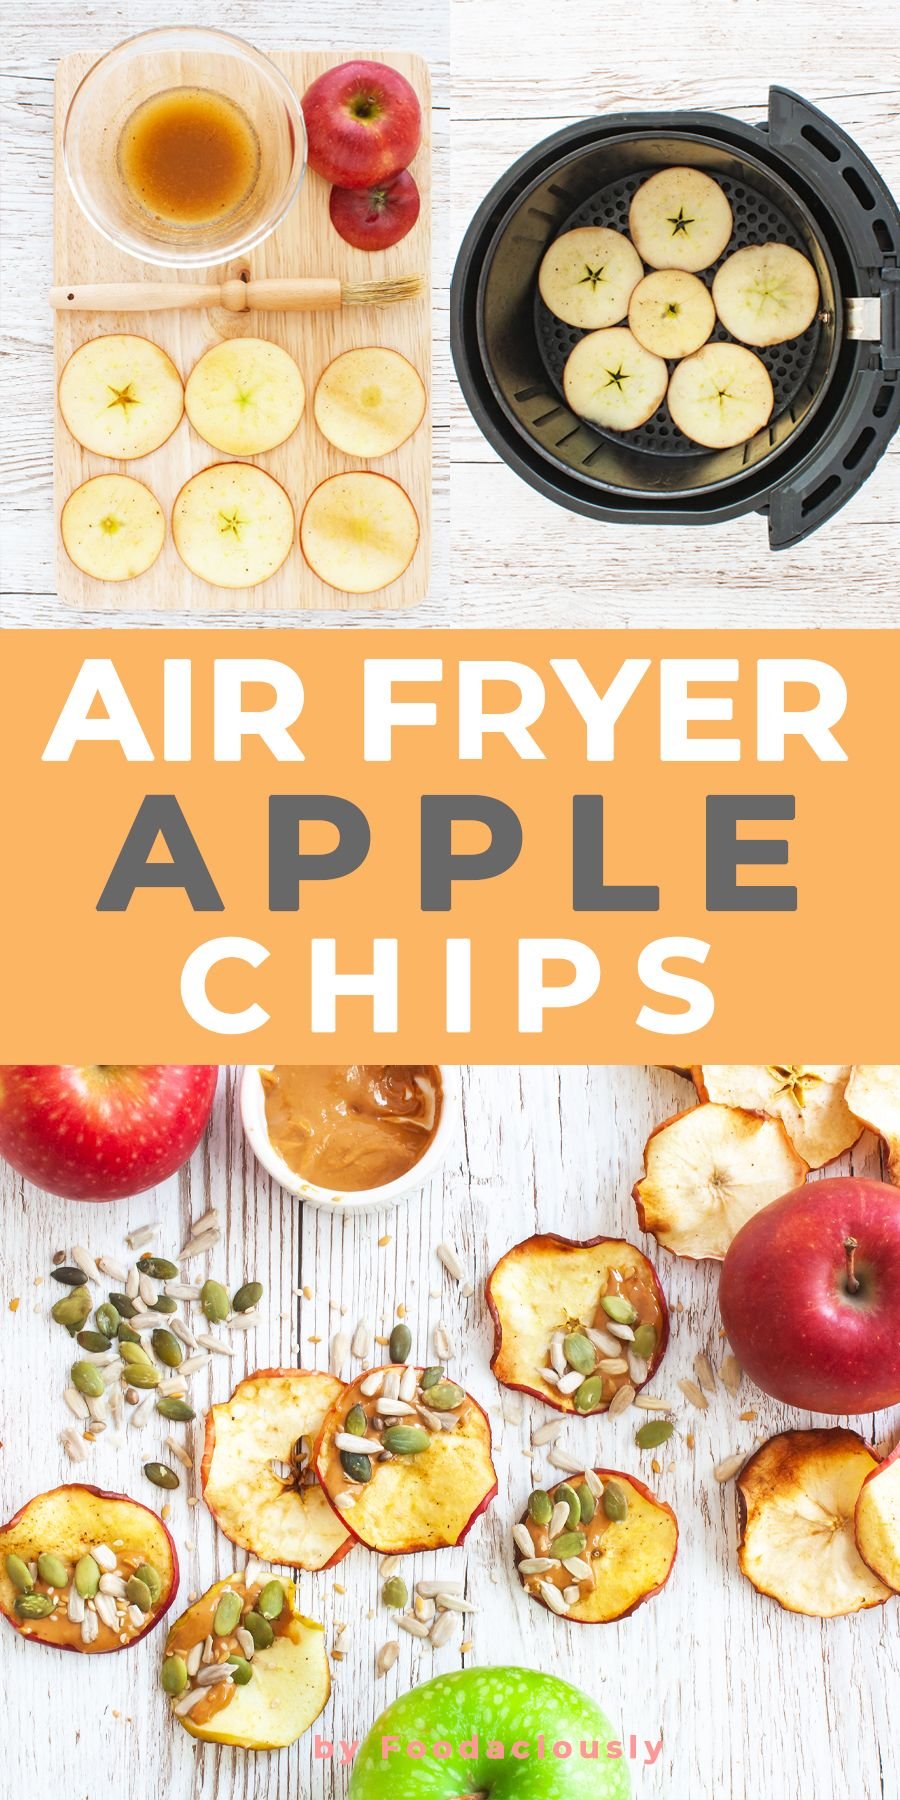 Air Fryer Apple Chips with Cashew Butter and Seeds